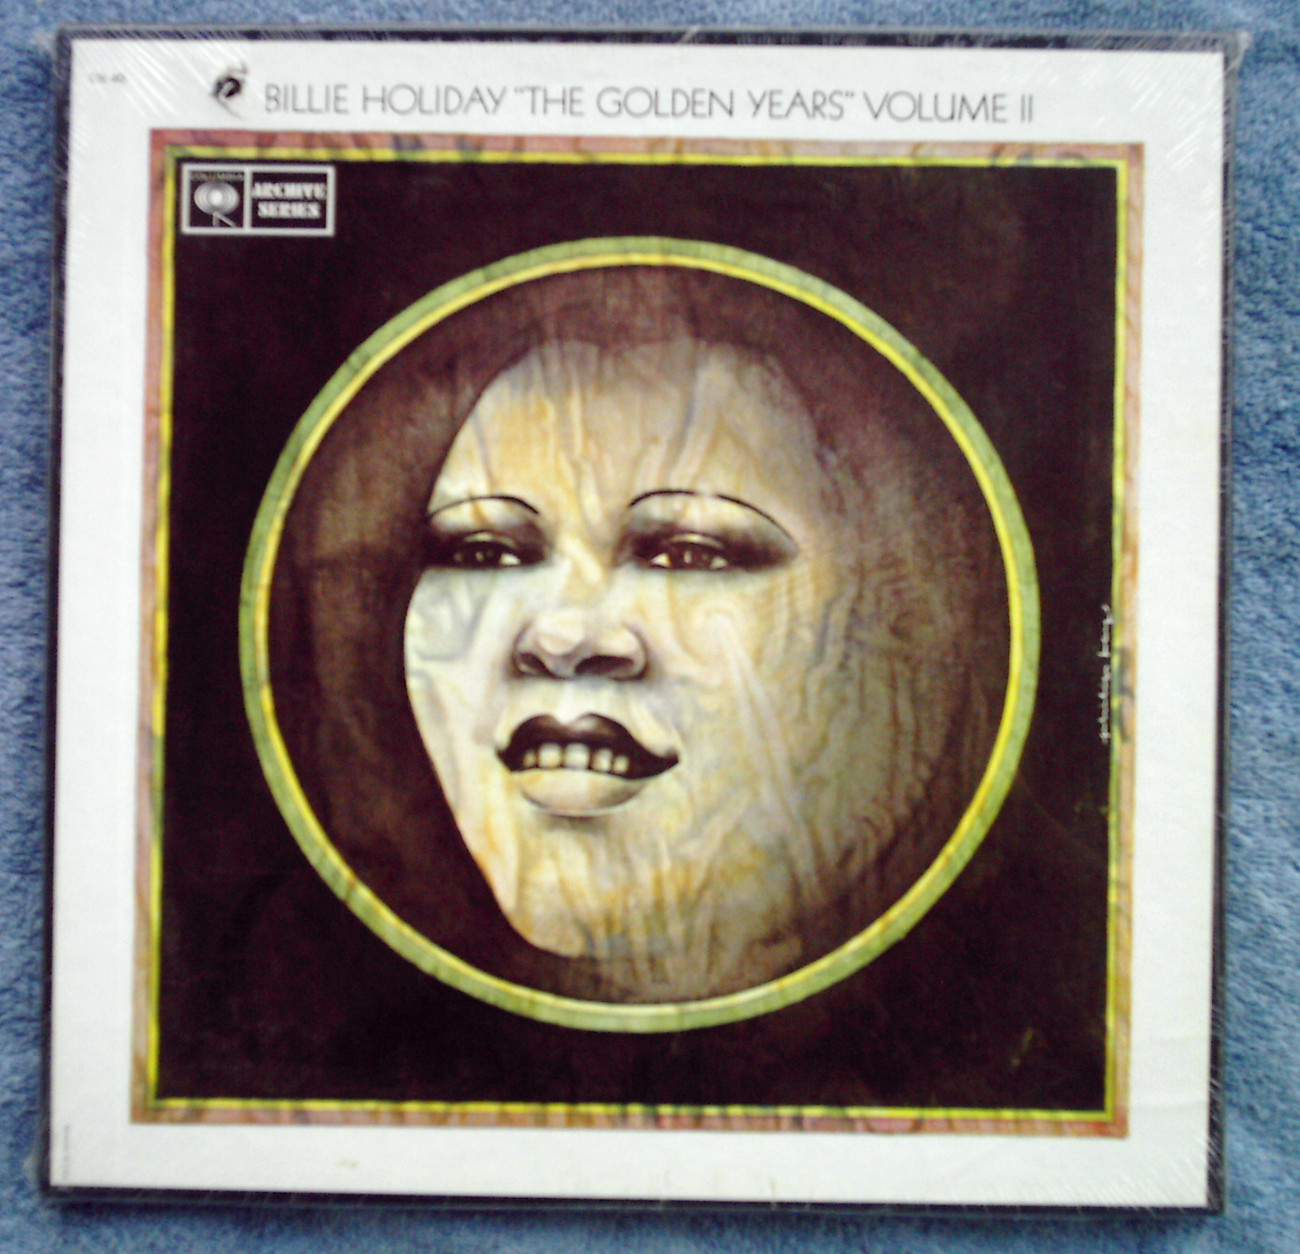 Billie Holiday Golden Years volume II sealed box 3X LP cutout jazz Lester Young